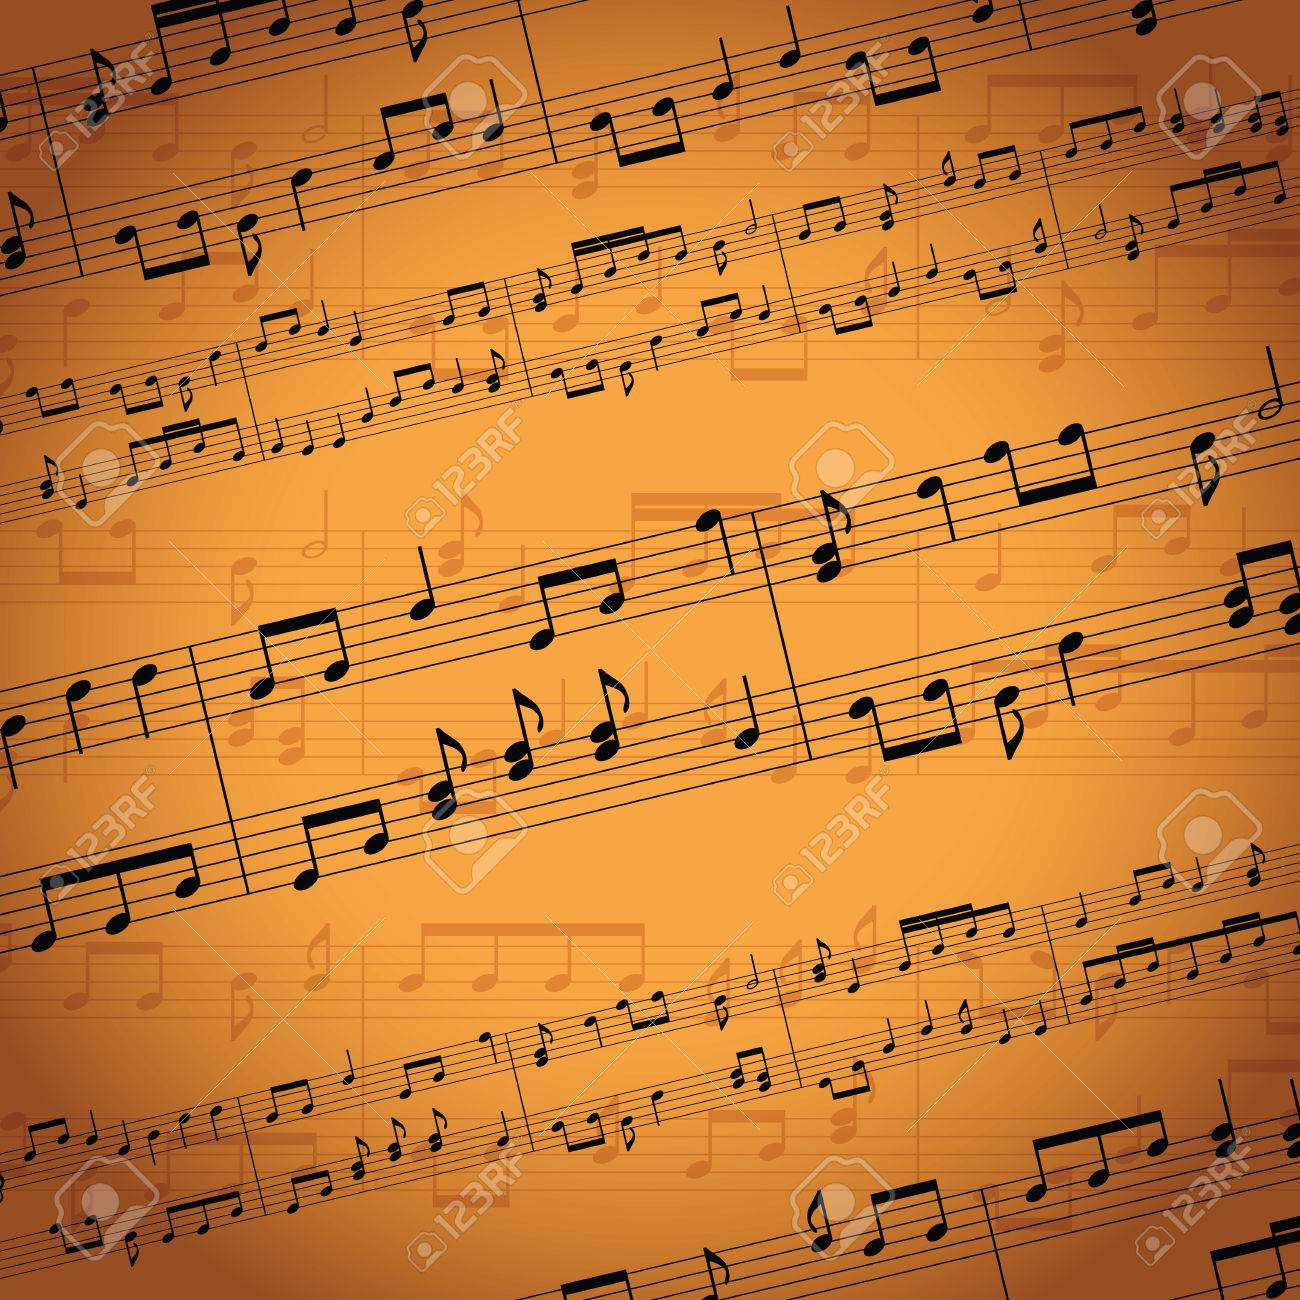 music notes background - 50440927